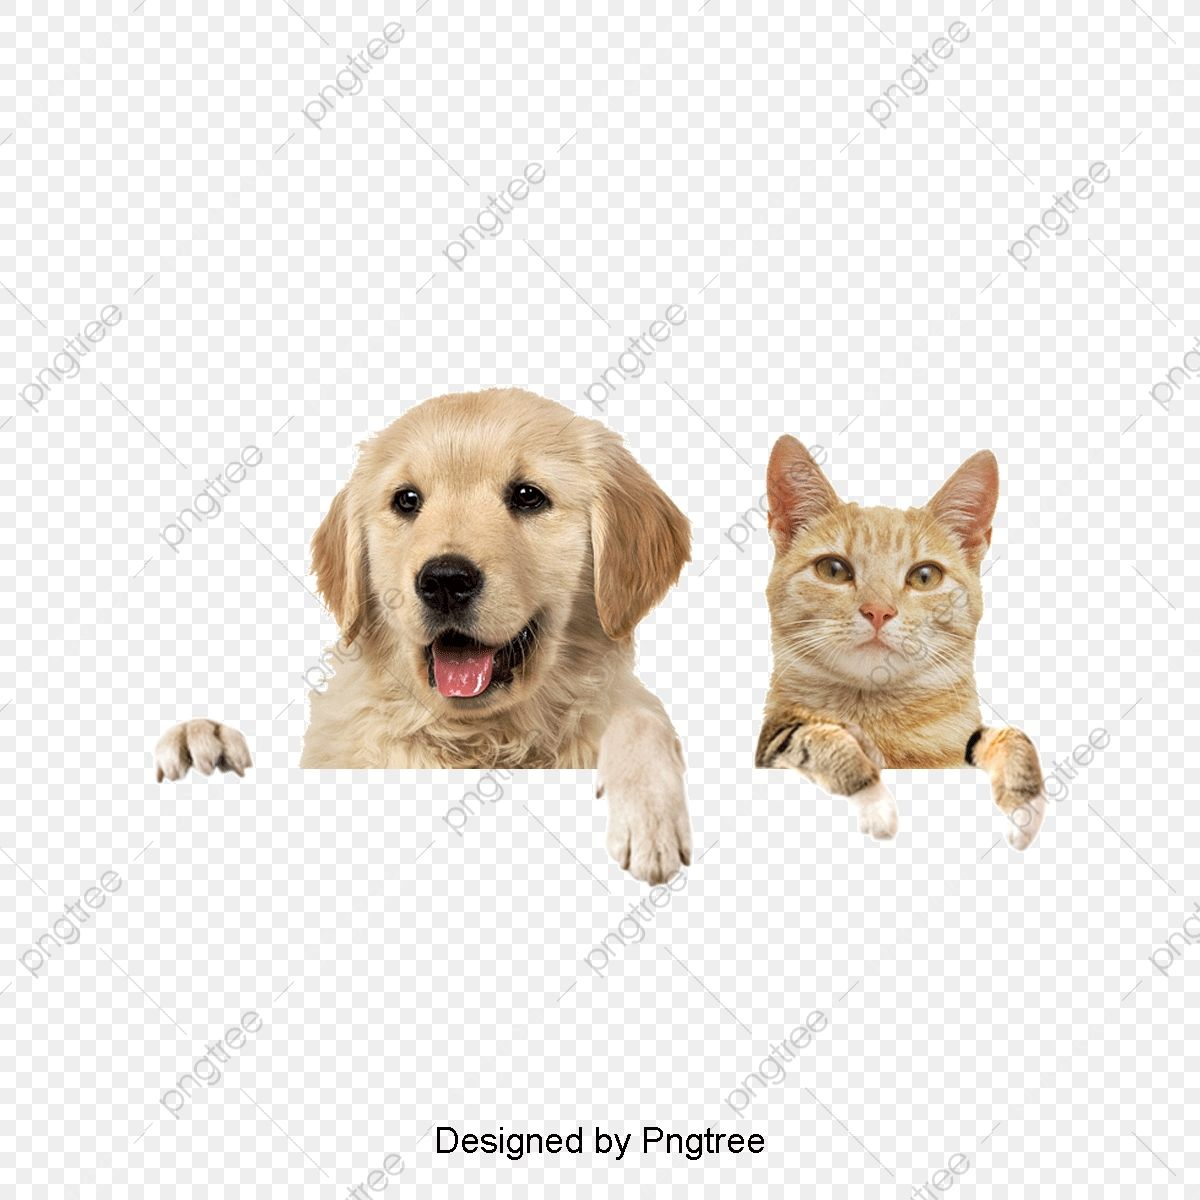 Dogs And Cats Dogs Dog Cat Puppy Png Transparent Image And Clipart For Free Download In 2021 Cute Cats And Dogs Cat Background Dog Cat